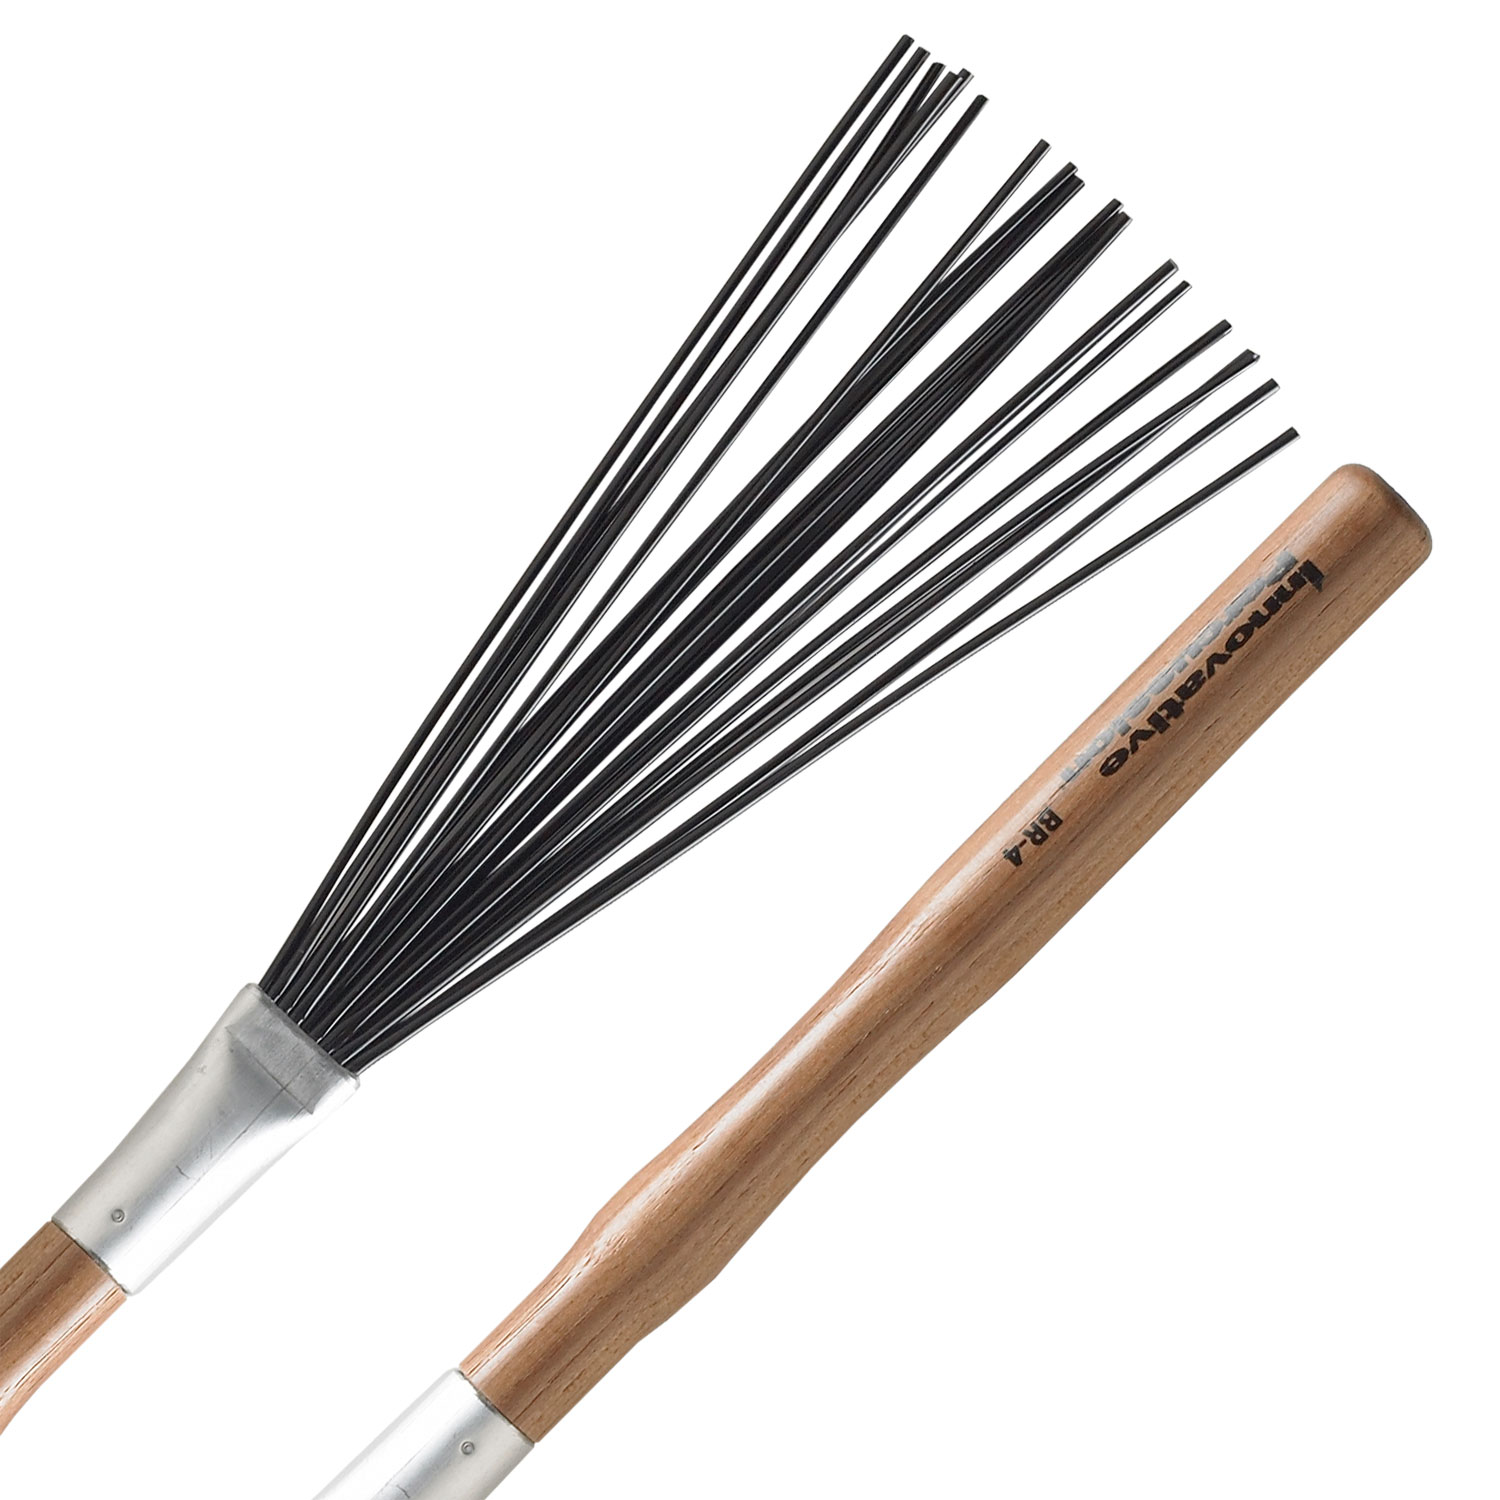 Innovative Percussion Heavy Nylon Brushes with Medium Handles